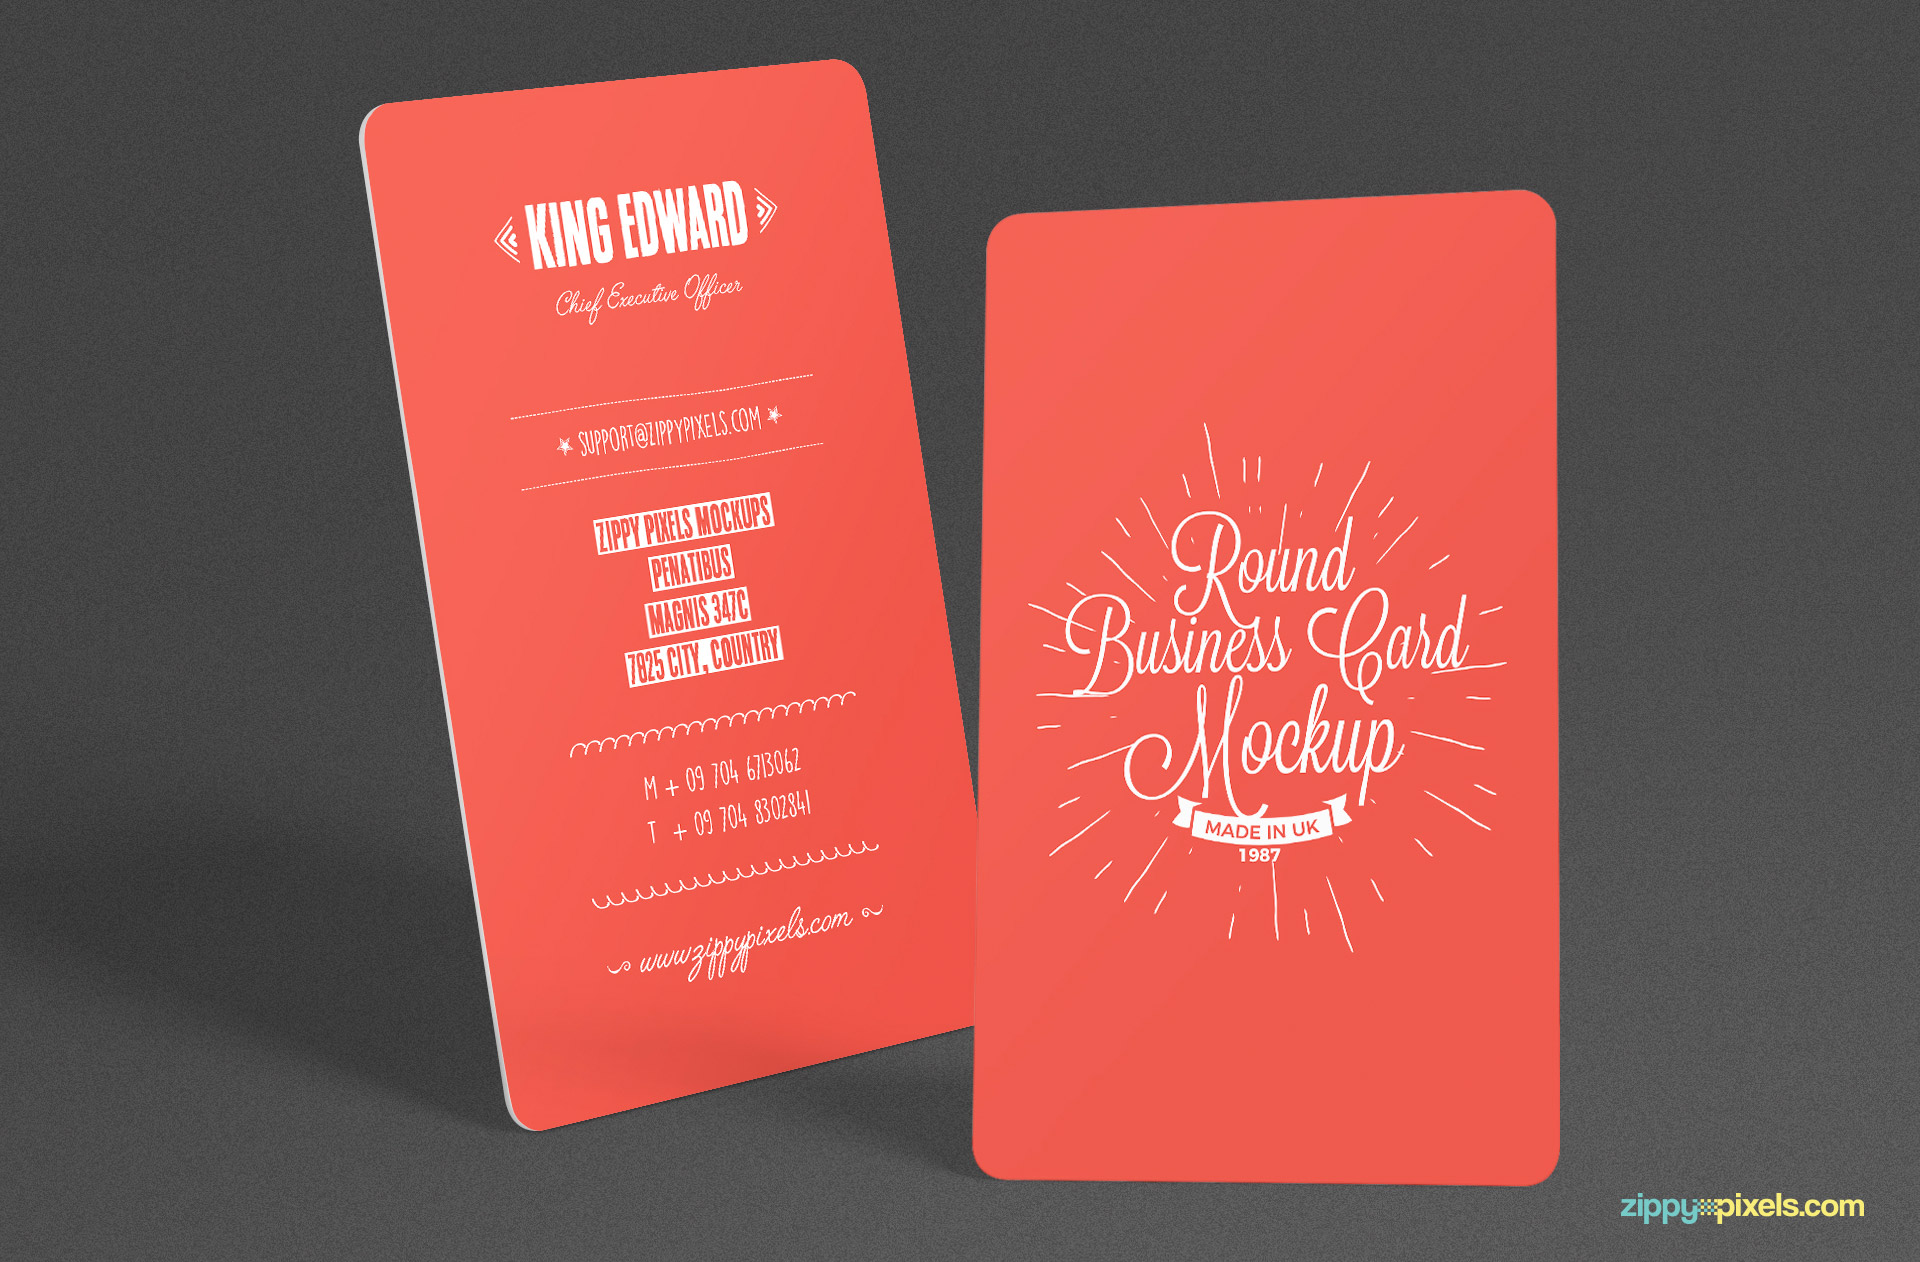 Free stylish round business card mockup psd zippypixels free high res professional and corporate business card mockup reheart Gallery